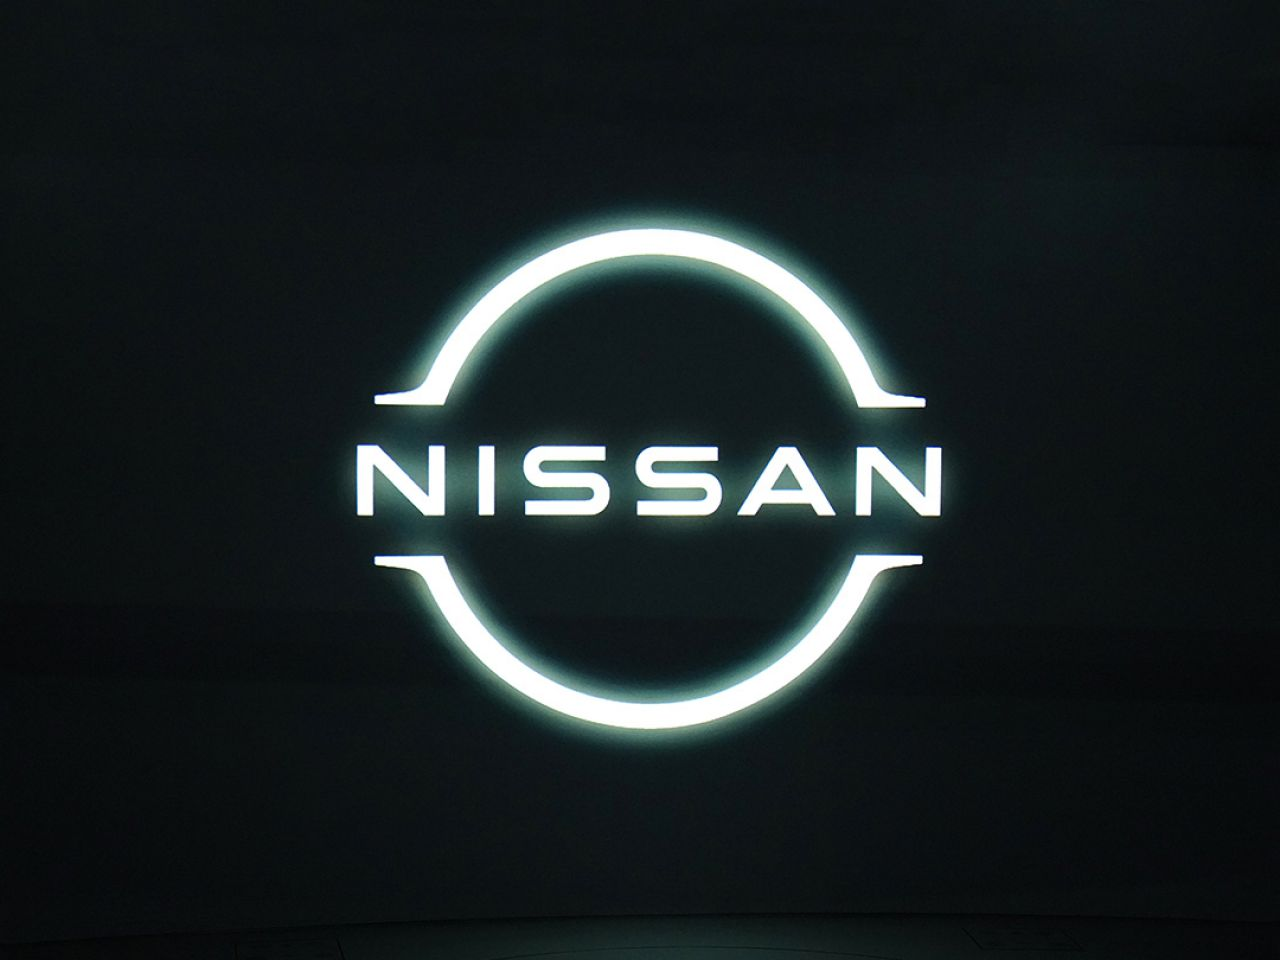 Unsecured Git server exposed Nissan North America